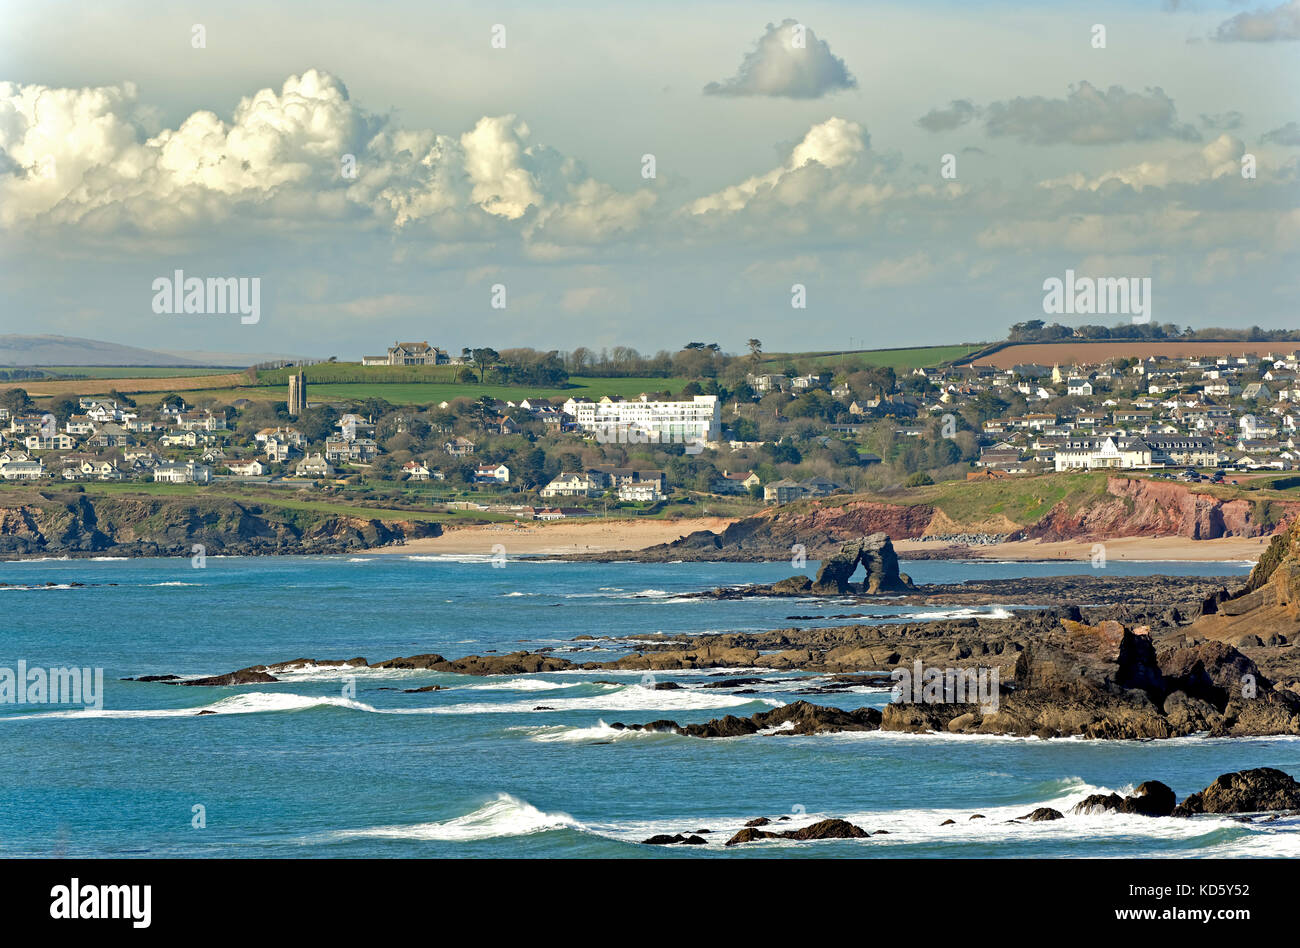 SOUTH MILTON SANDS AND THURLESTONE ROCK SOUTH DEVON ENGLAND - Stock Image